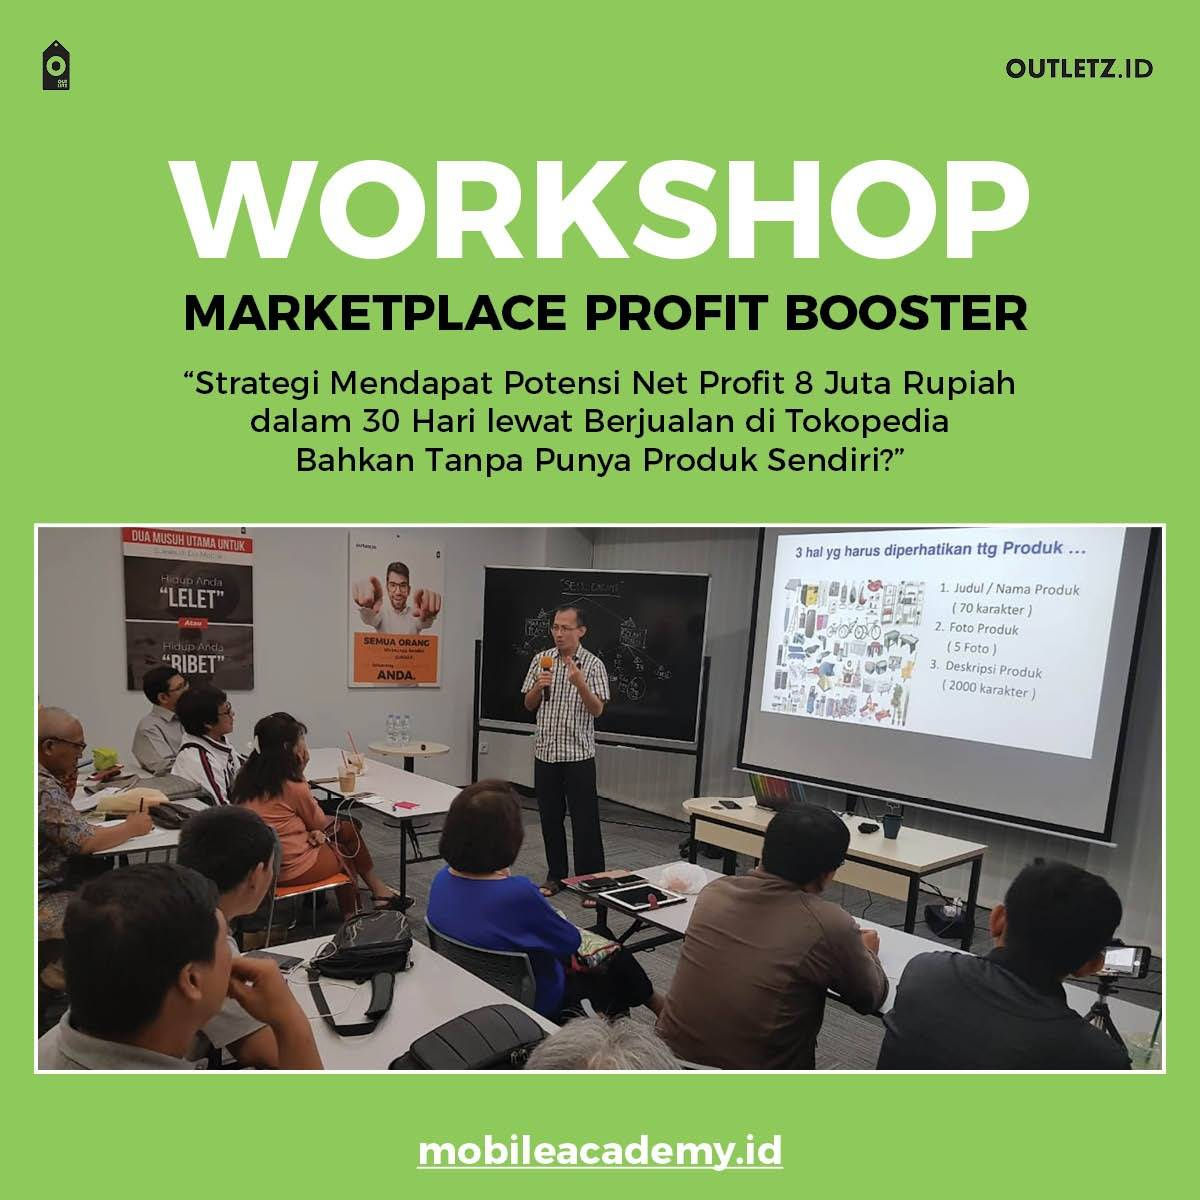 Workshop Marketplace Profit Booster2